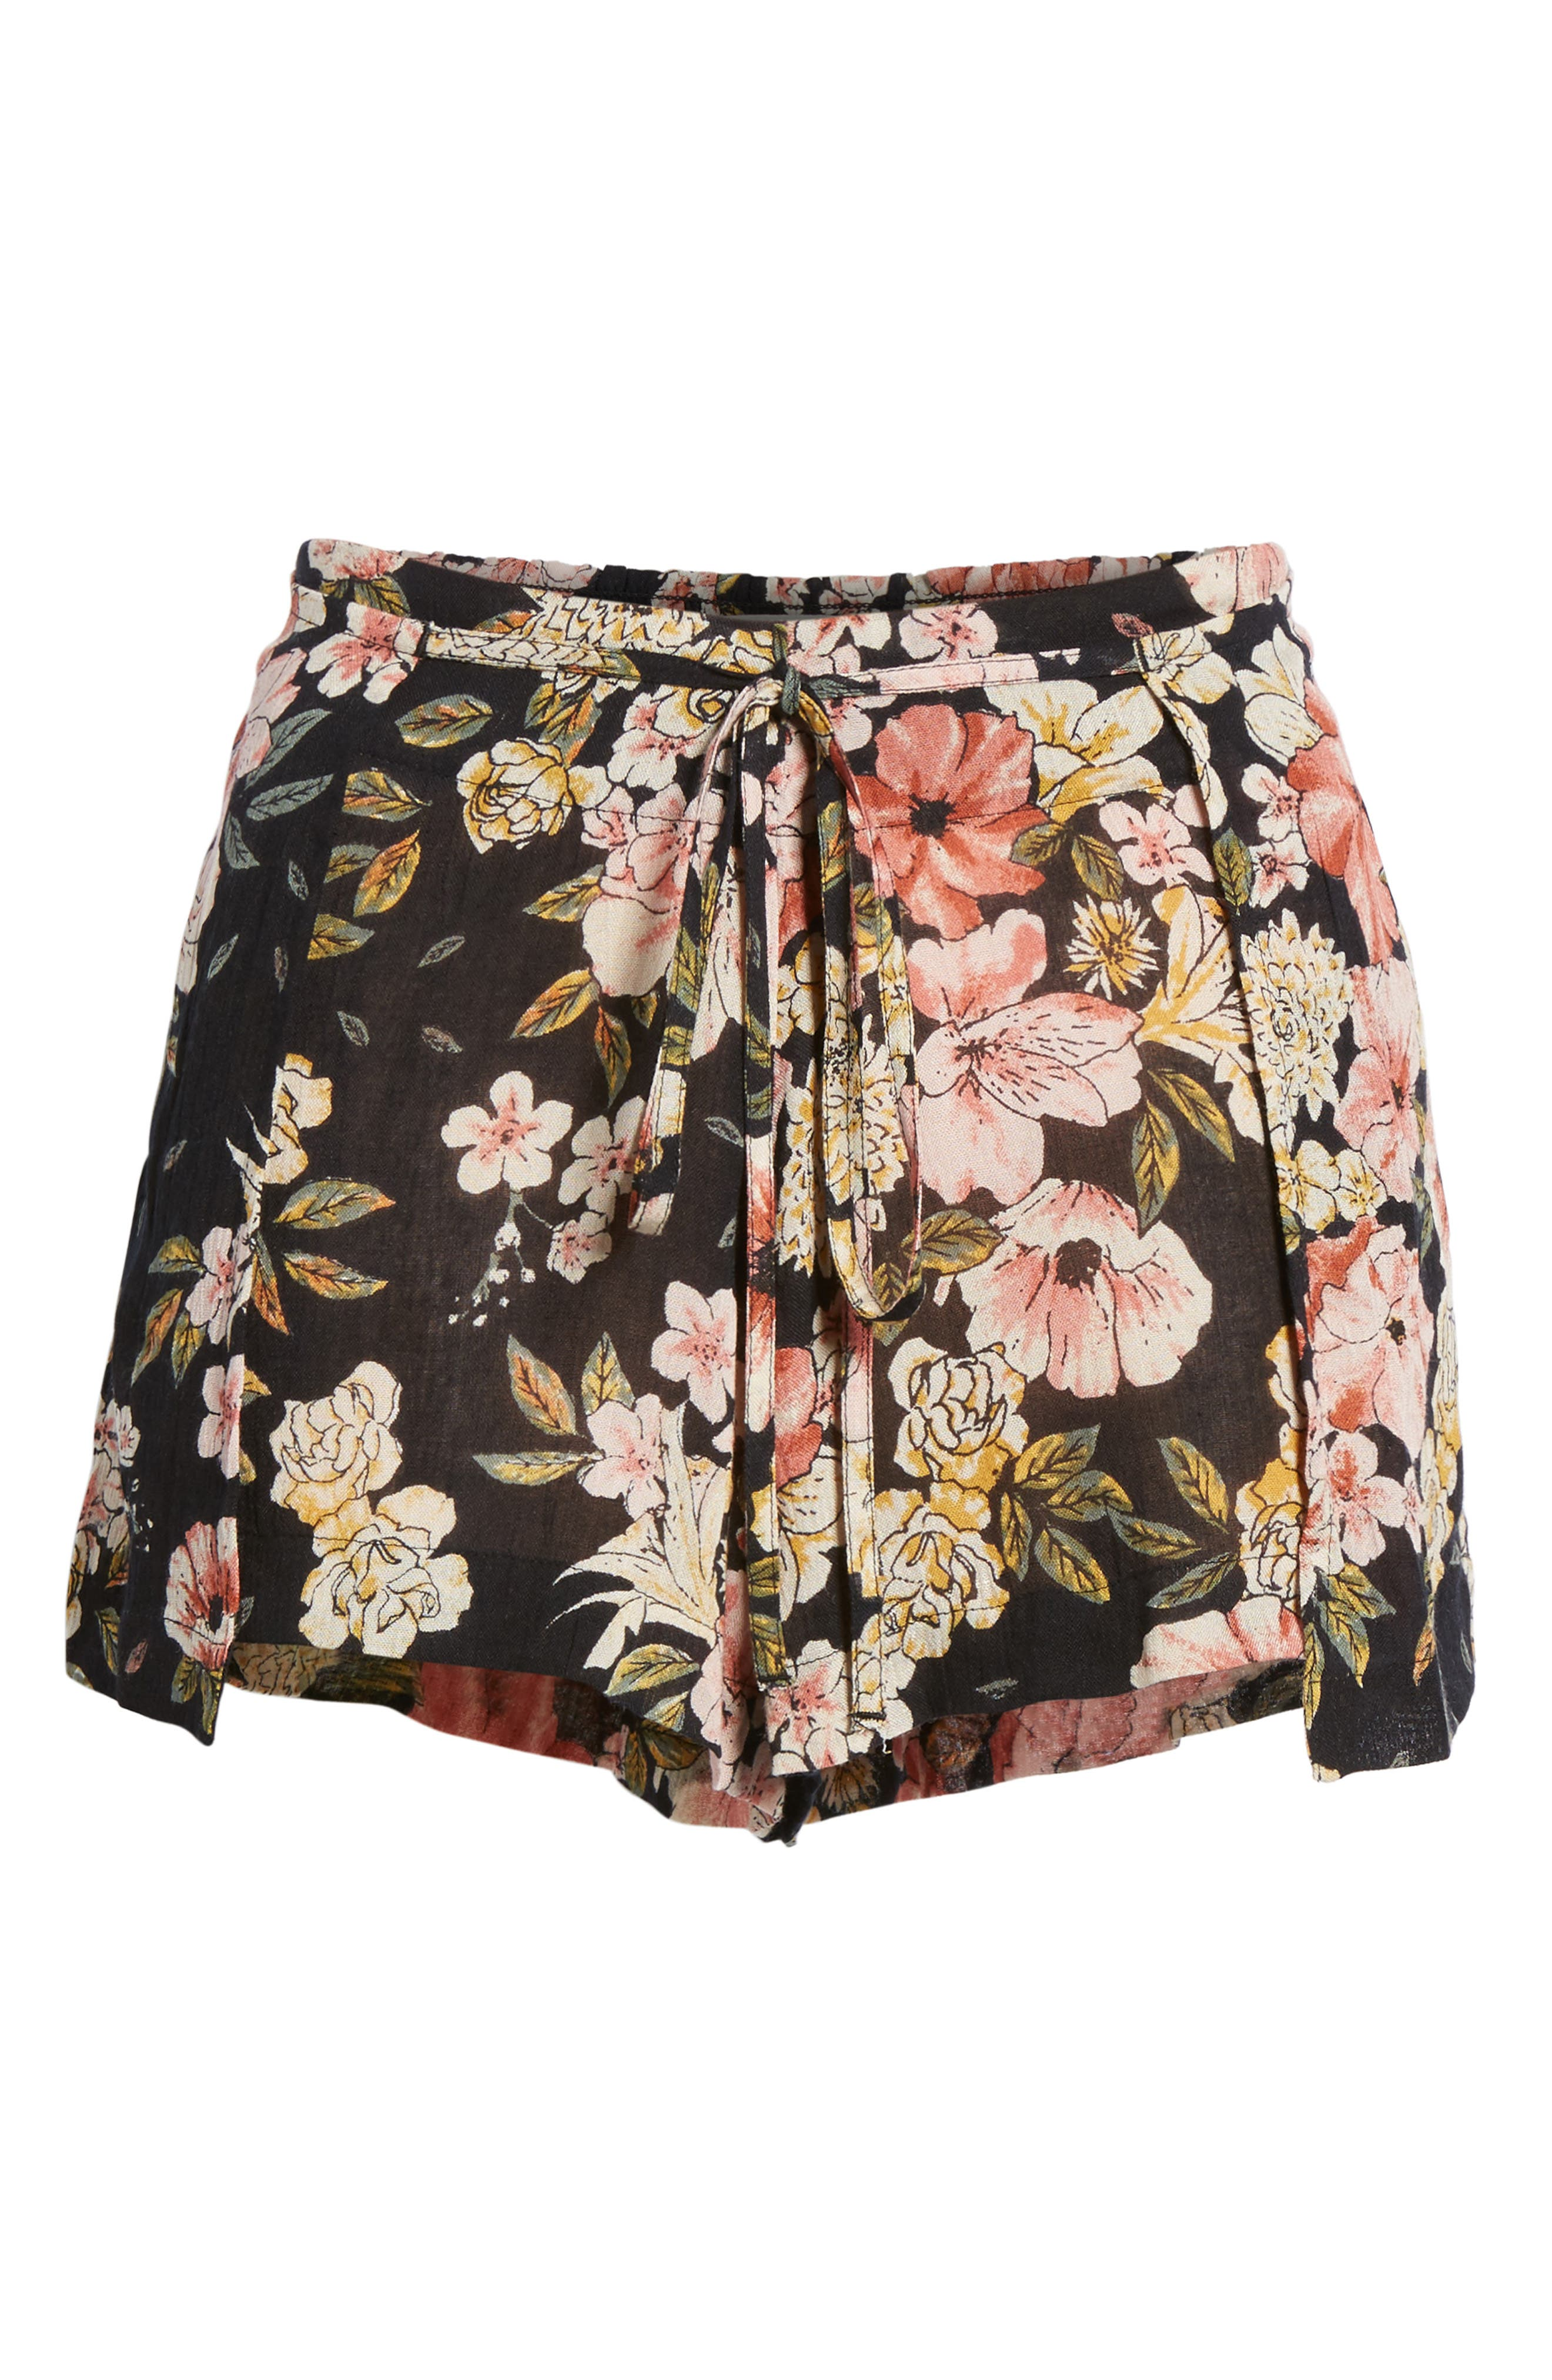 Trippy Day Floral Print Shorts,                             Alternate thumbnail 6, color,                             001